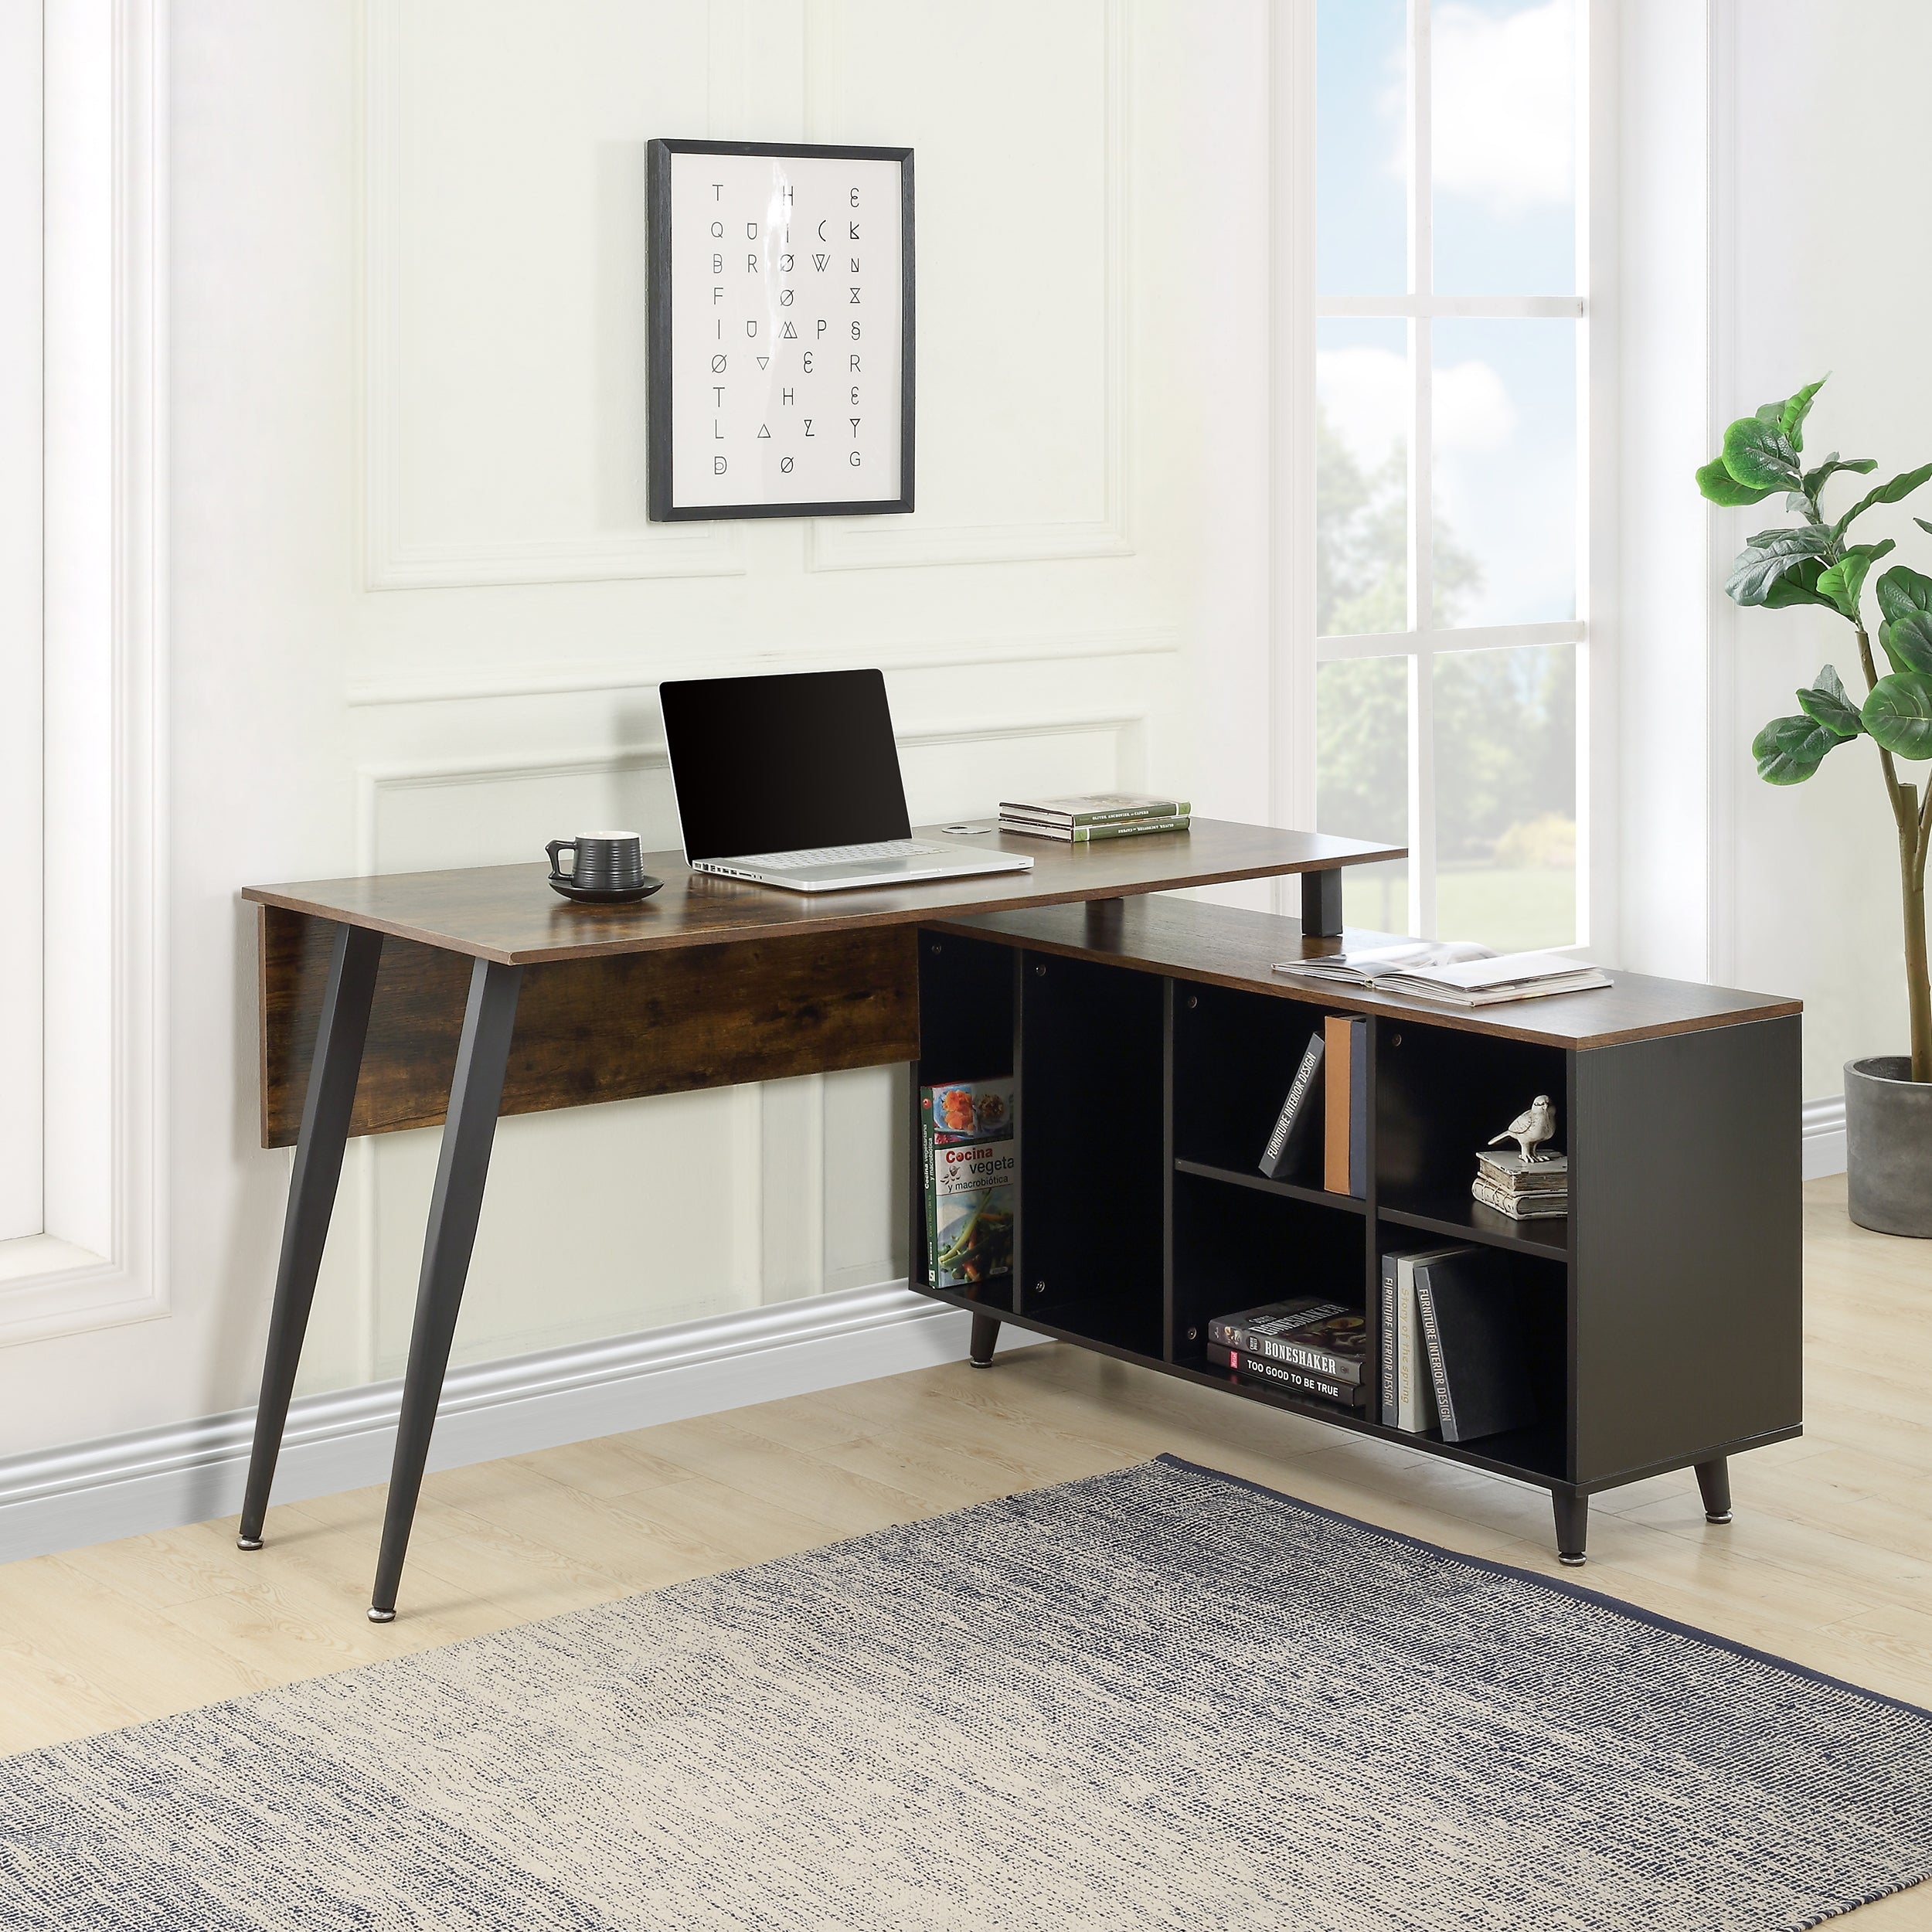 L-Shaped Computer Desk with Storage Shelves